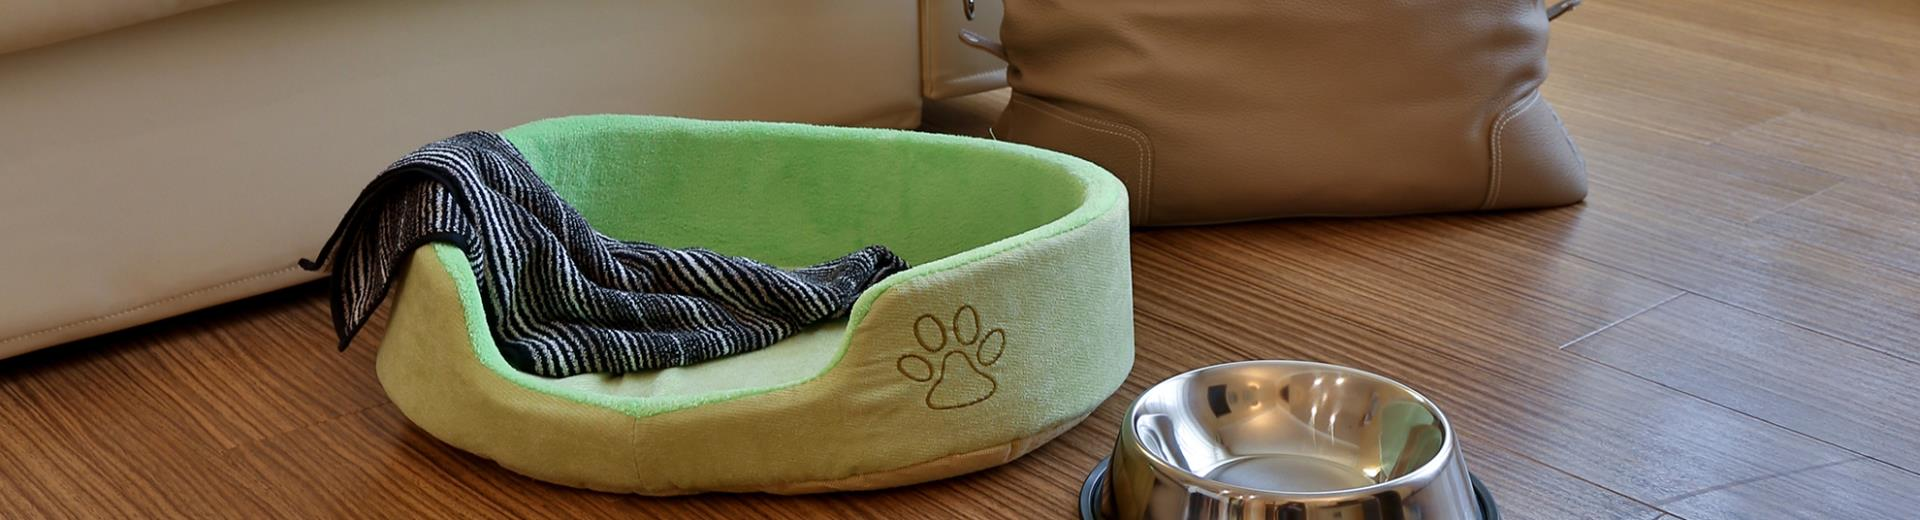 If you travel with your pet the BW Hotel Biri in Padua offer special services for you and you pet: pets are Welcome!